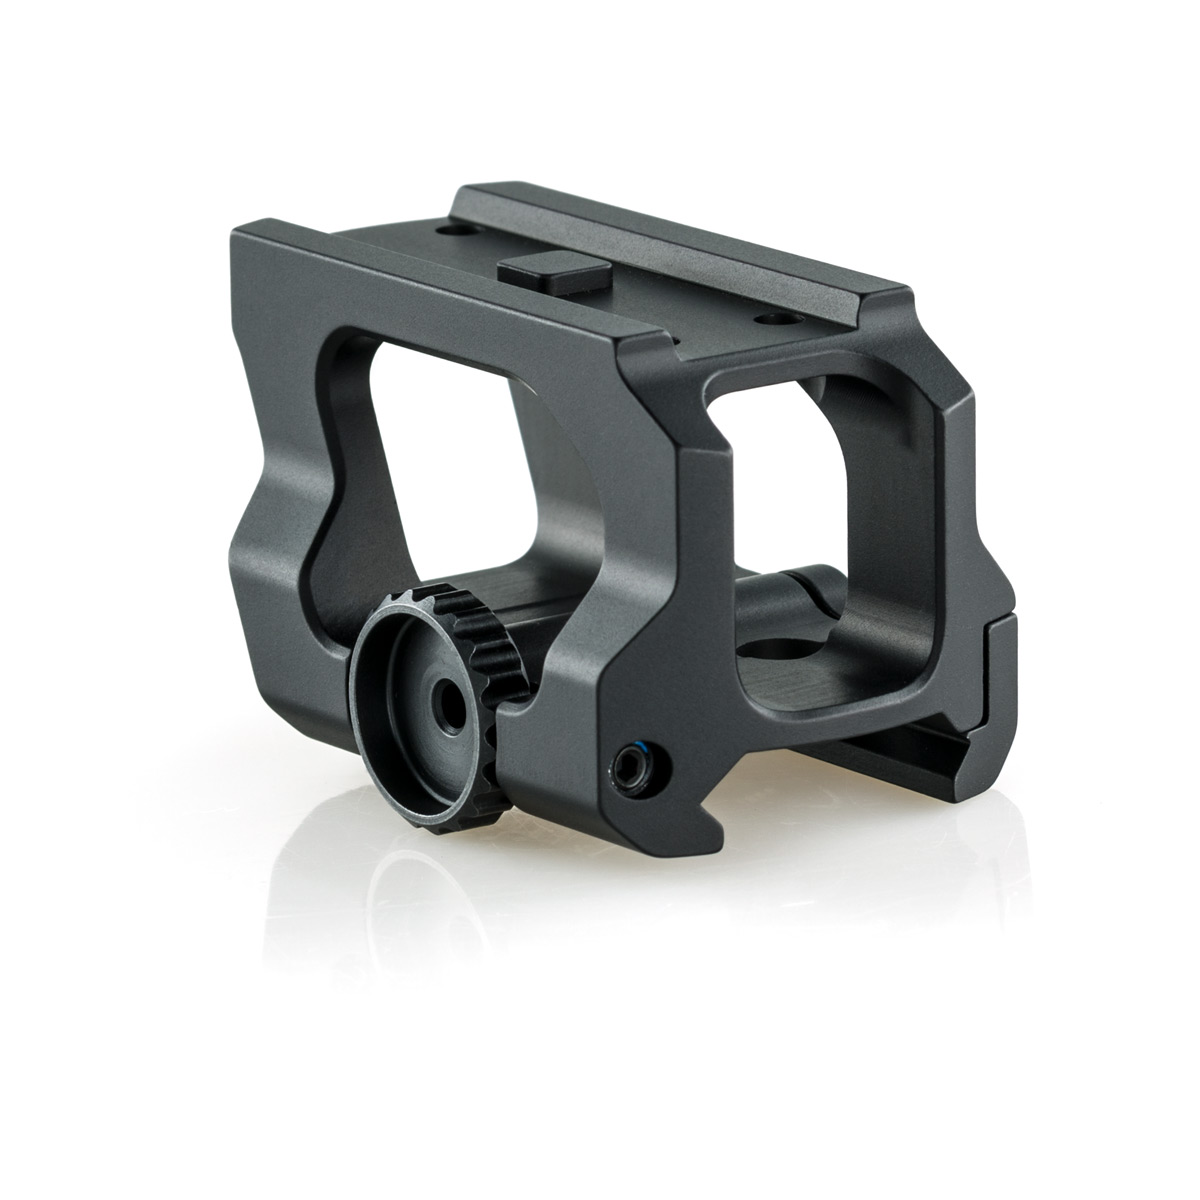 SCALARWORKS LDM/Aimpoint Micro T-2 Lower 1/3 Co-Witness Mount (SW0110)